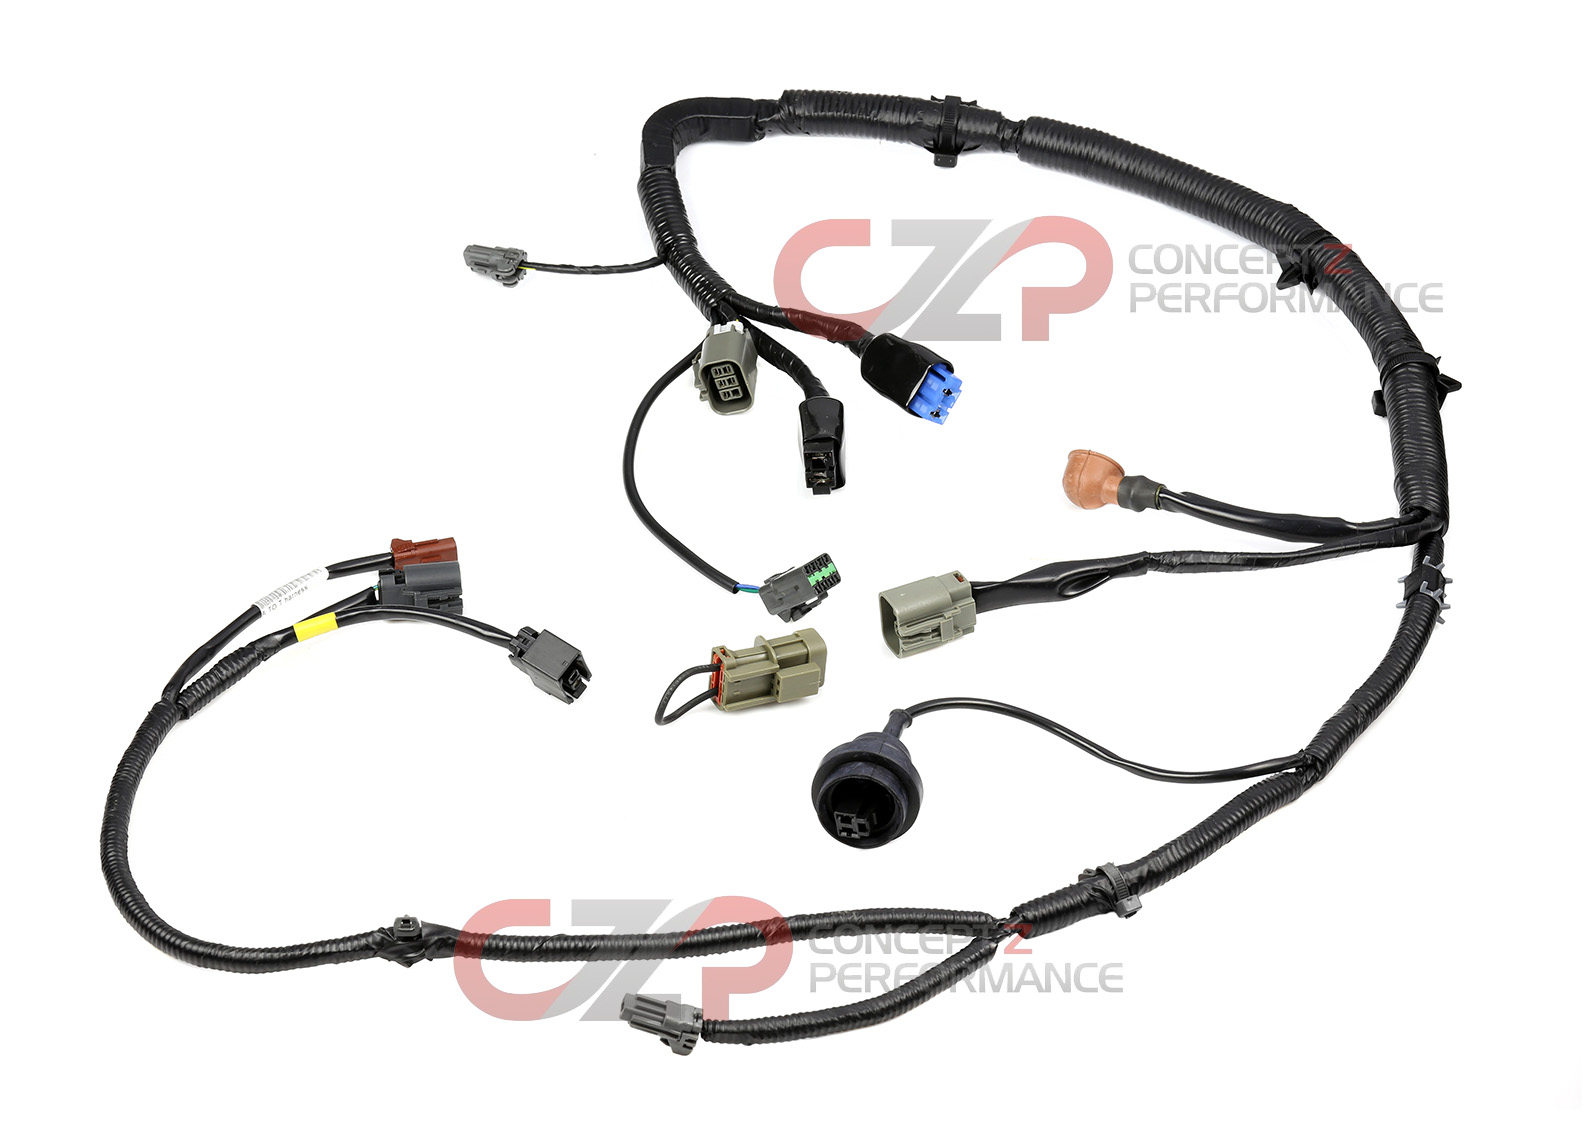 Nissan Z32 Wiring Manual Guide Diagram 370z Fuse Box Location Specialties Alternator To Transmission Harness Automatic At Rh Conceptzperformance Com Z35